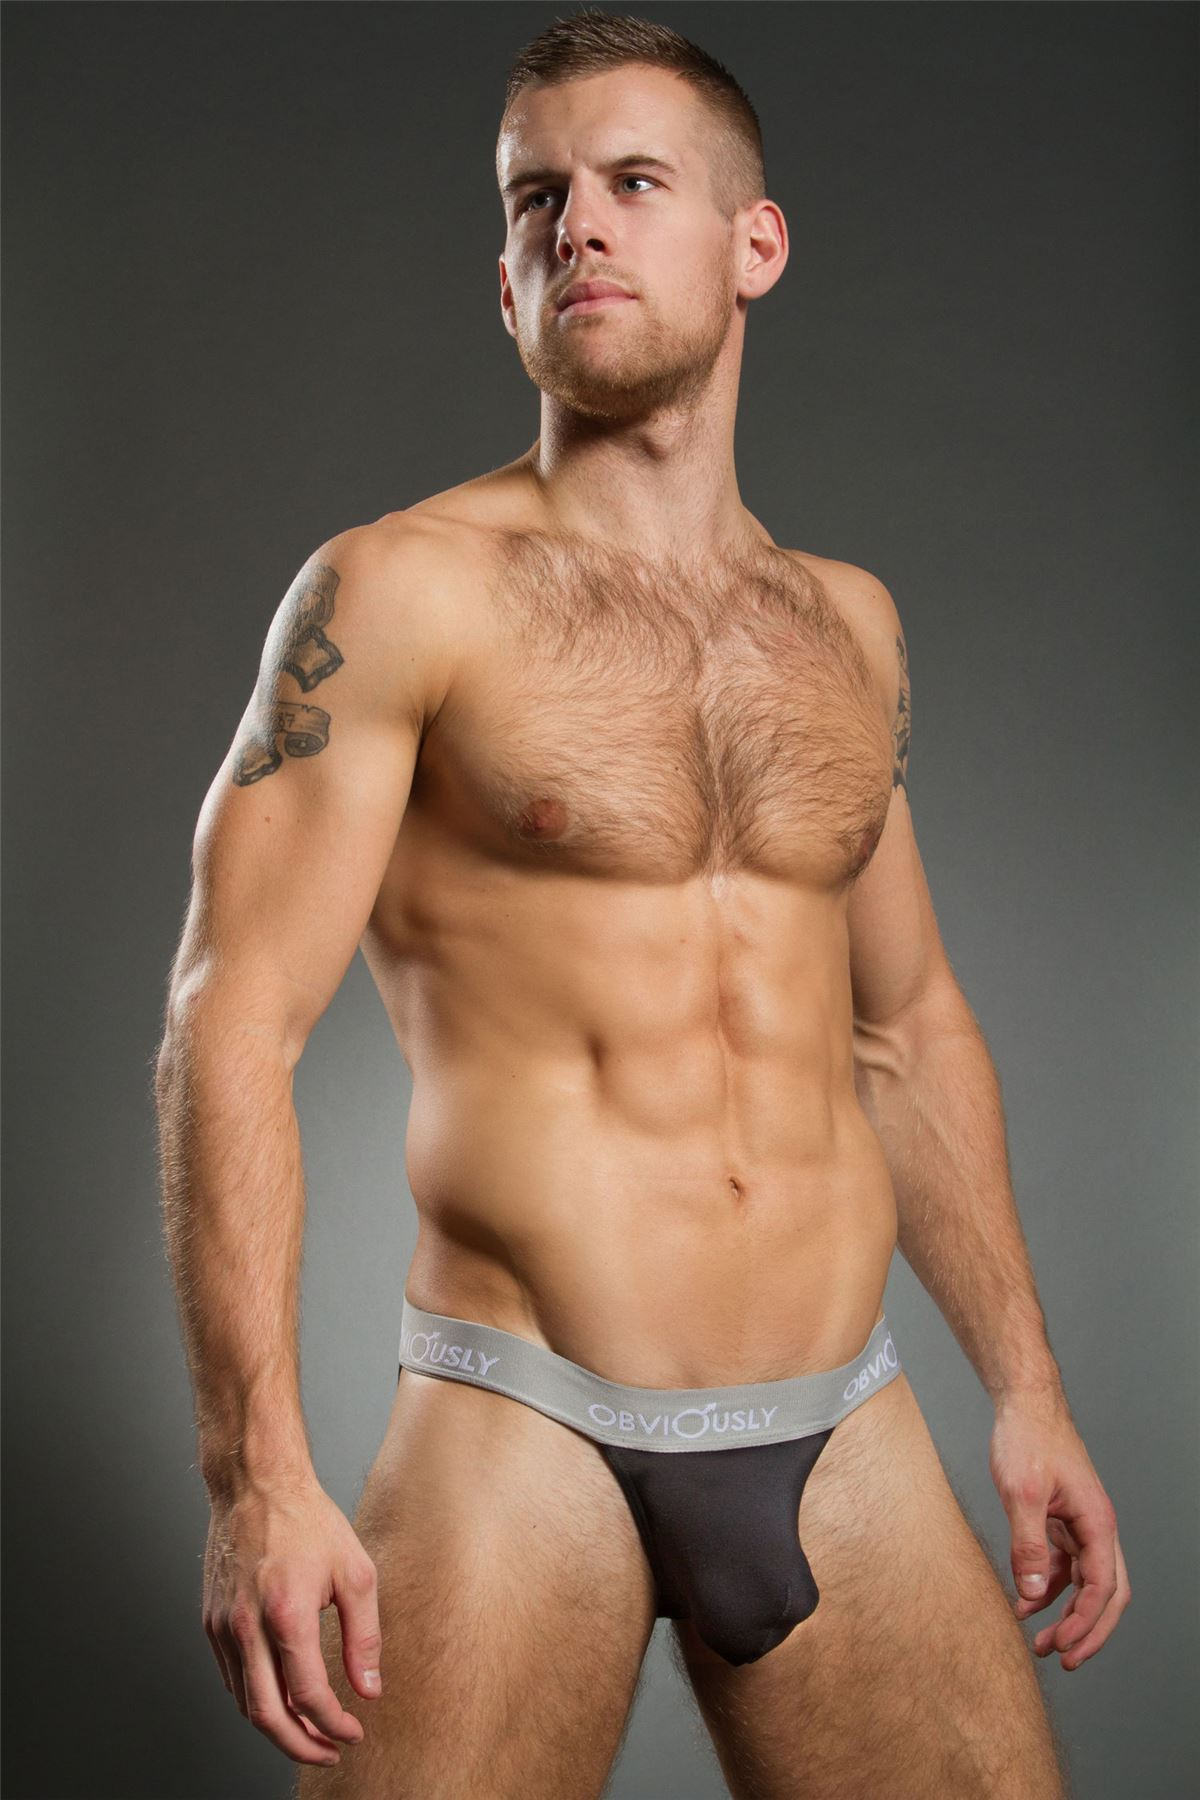 Situation bikini brief low man rise style remarkable